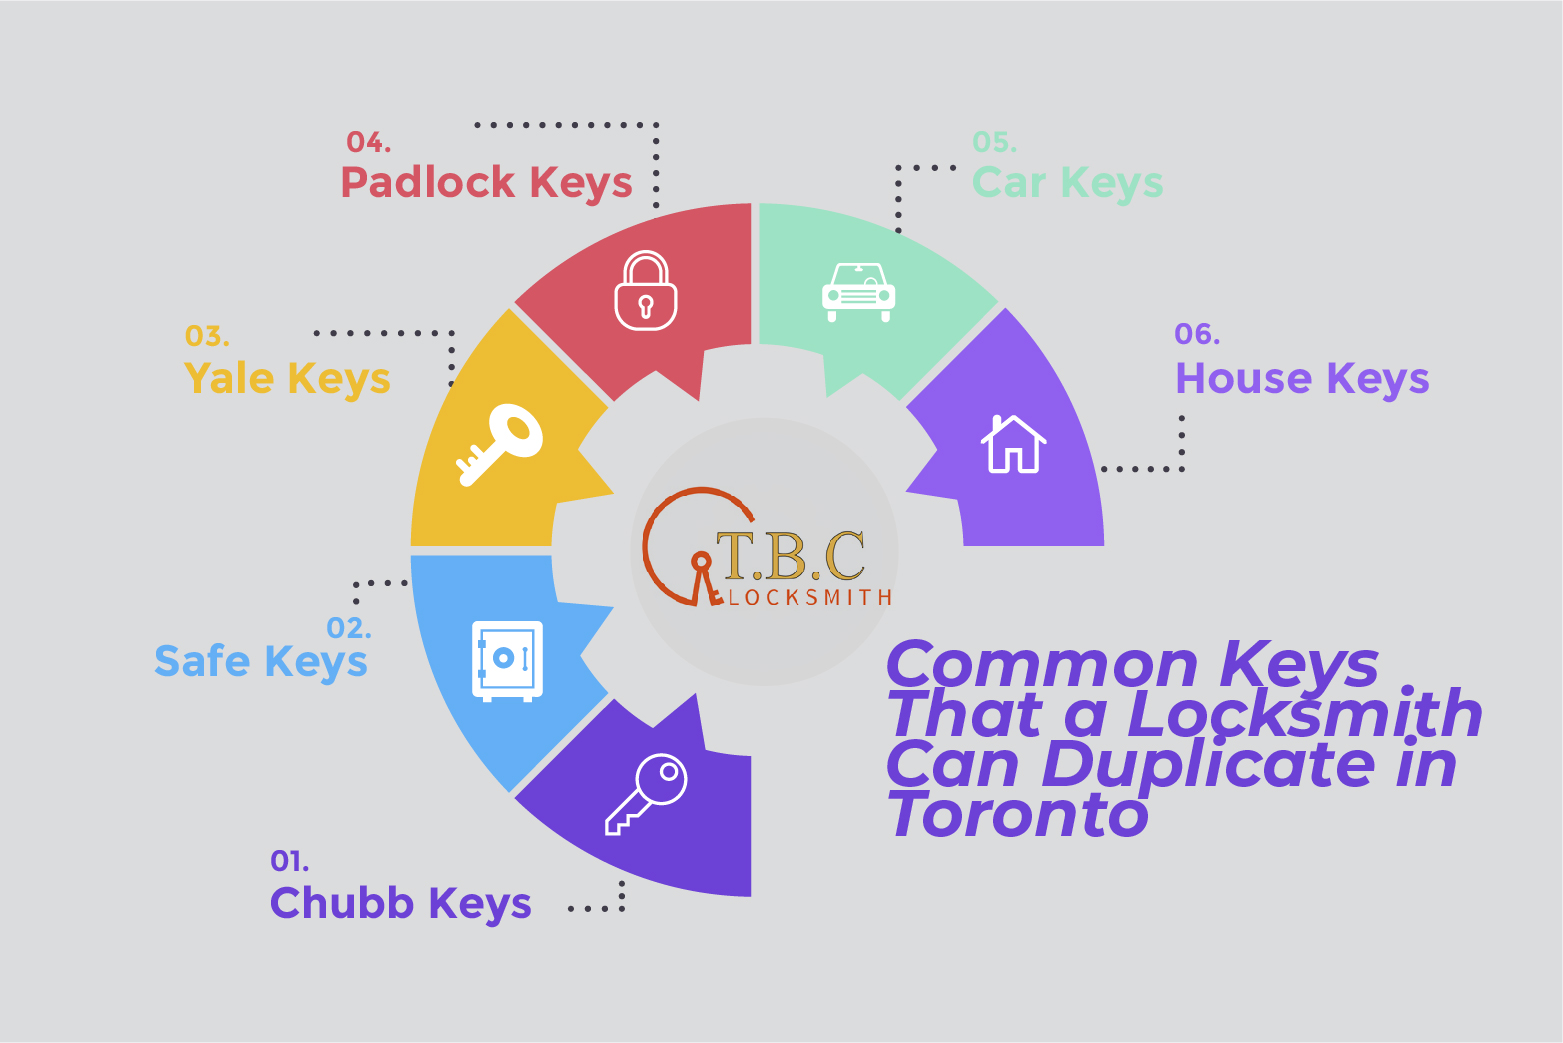 Common Keys a Locksmith Can Duplicate in Toronto